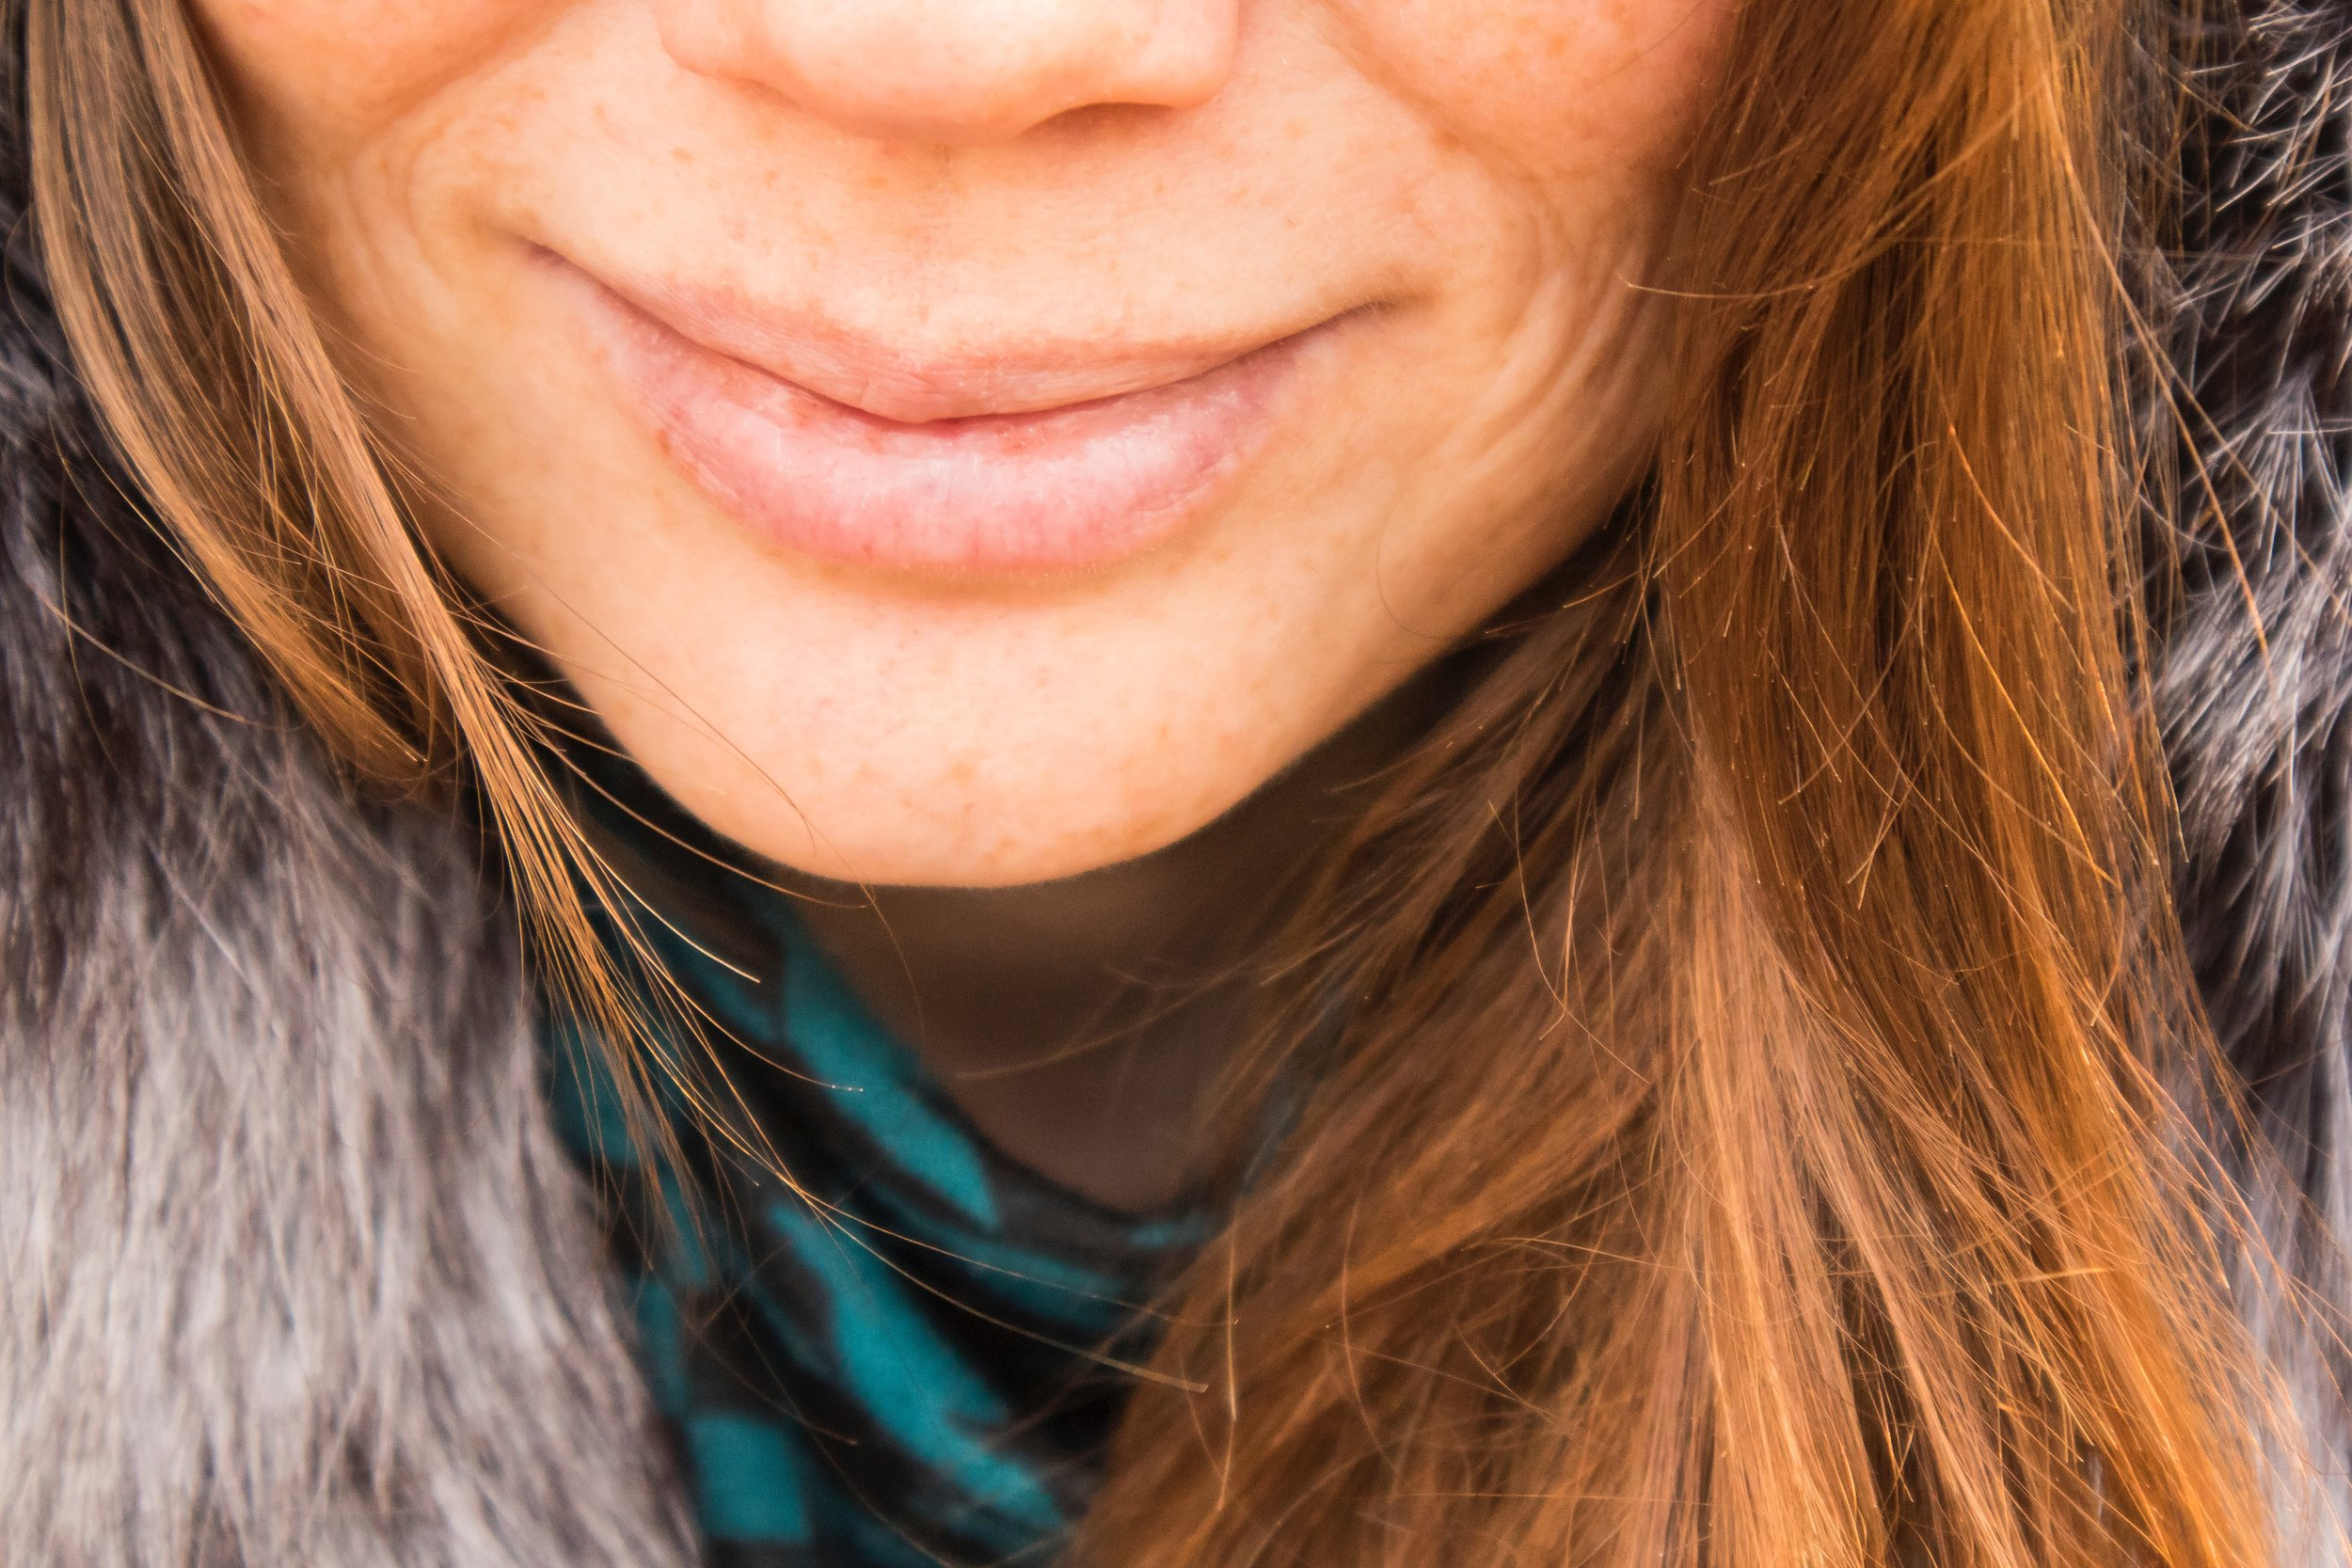 How to Heal Your Adult Acne